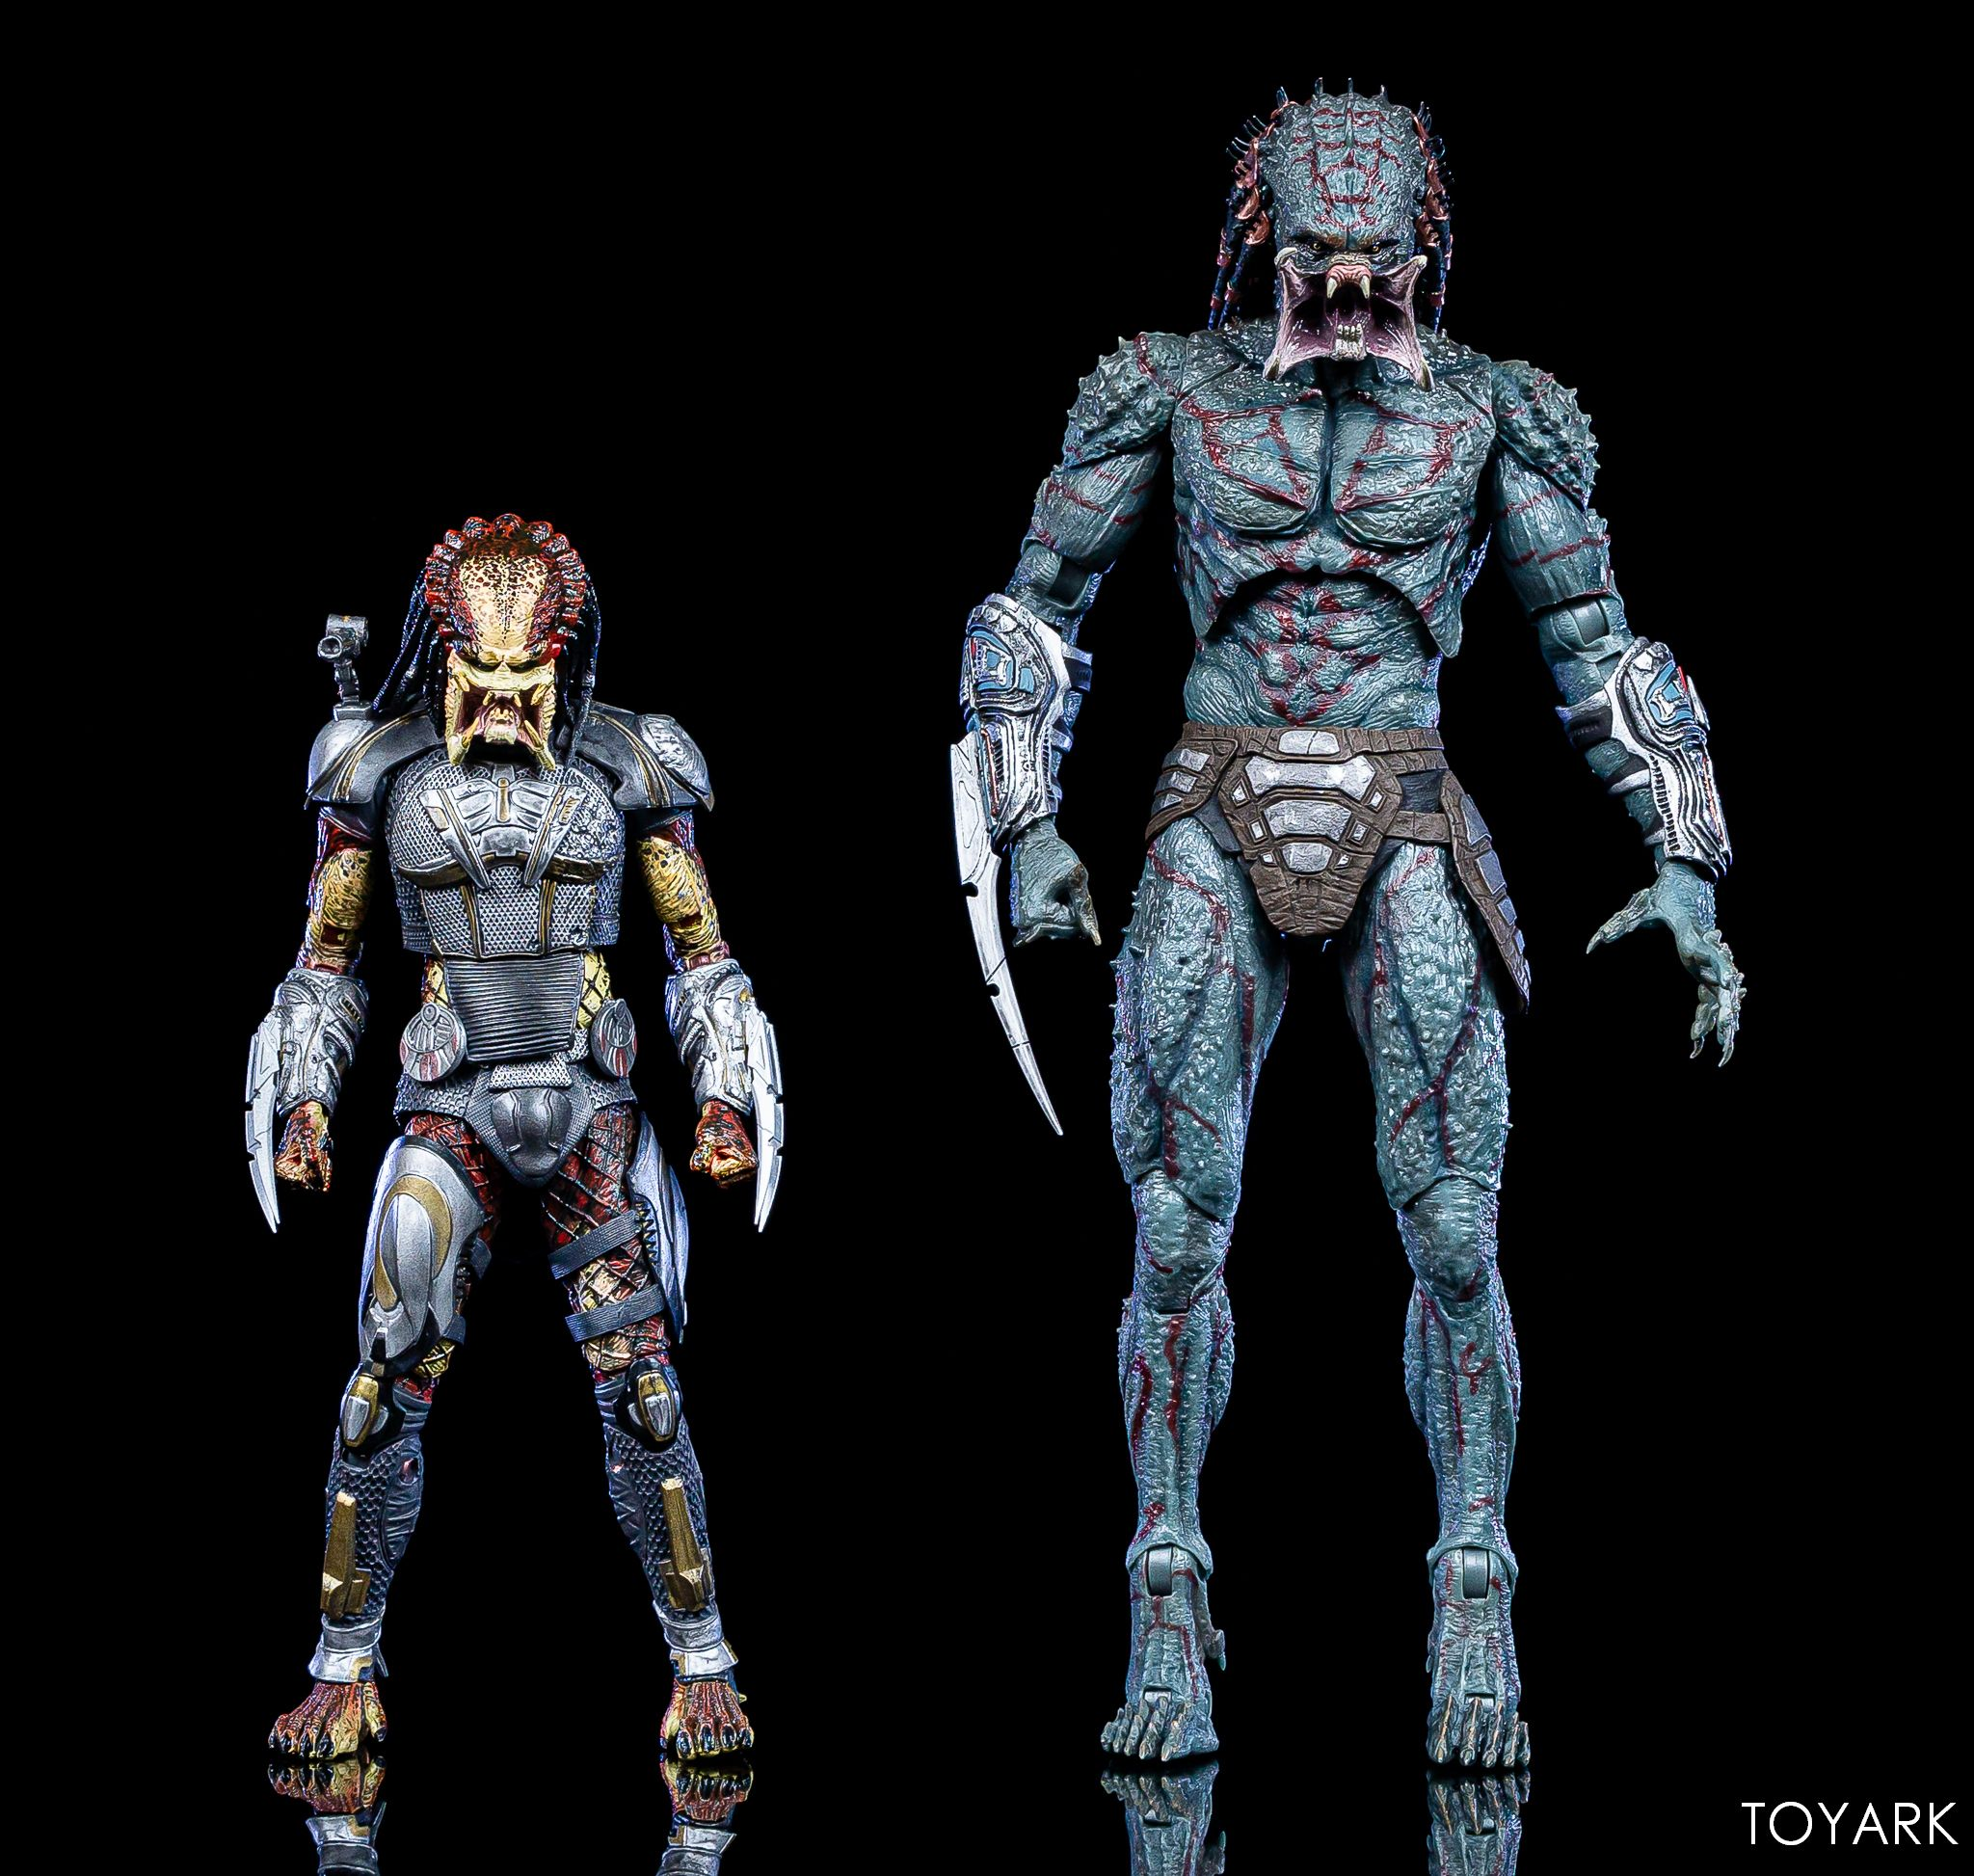 https://news.toyark.com/wp-content/uploads/sites/4/2019/05/Armored-Assassin-Predator-022.jpg